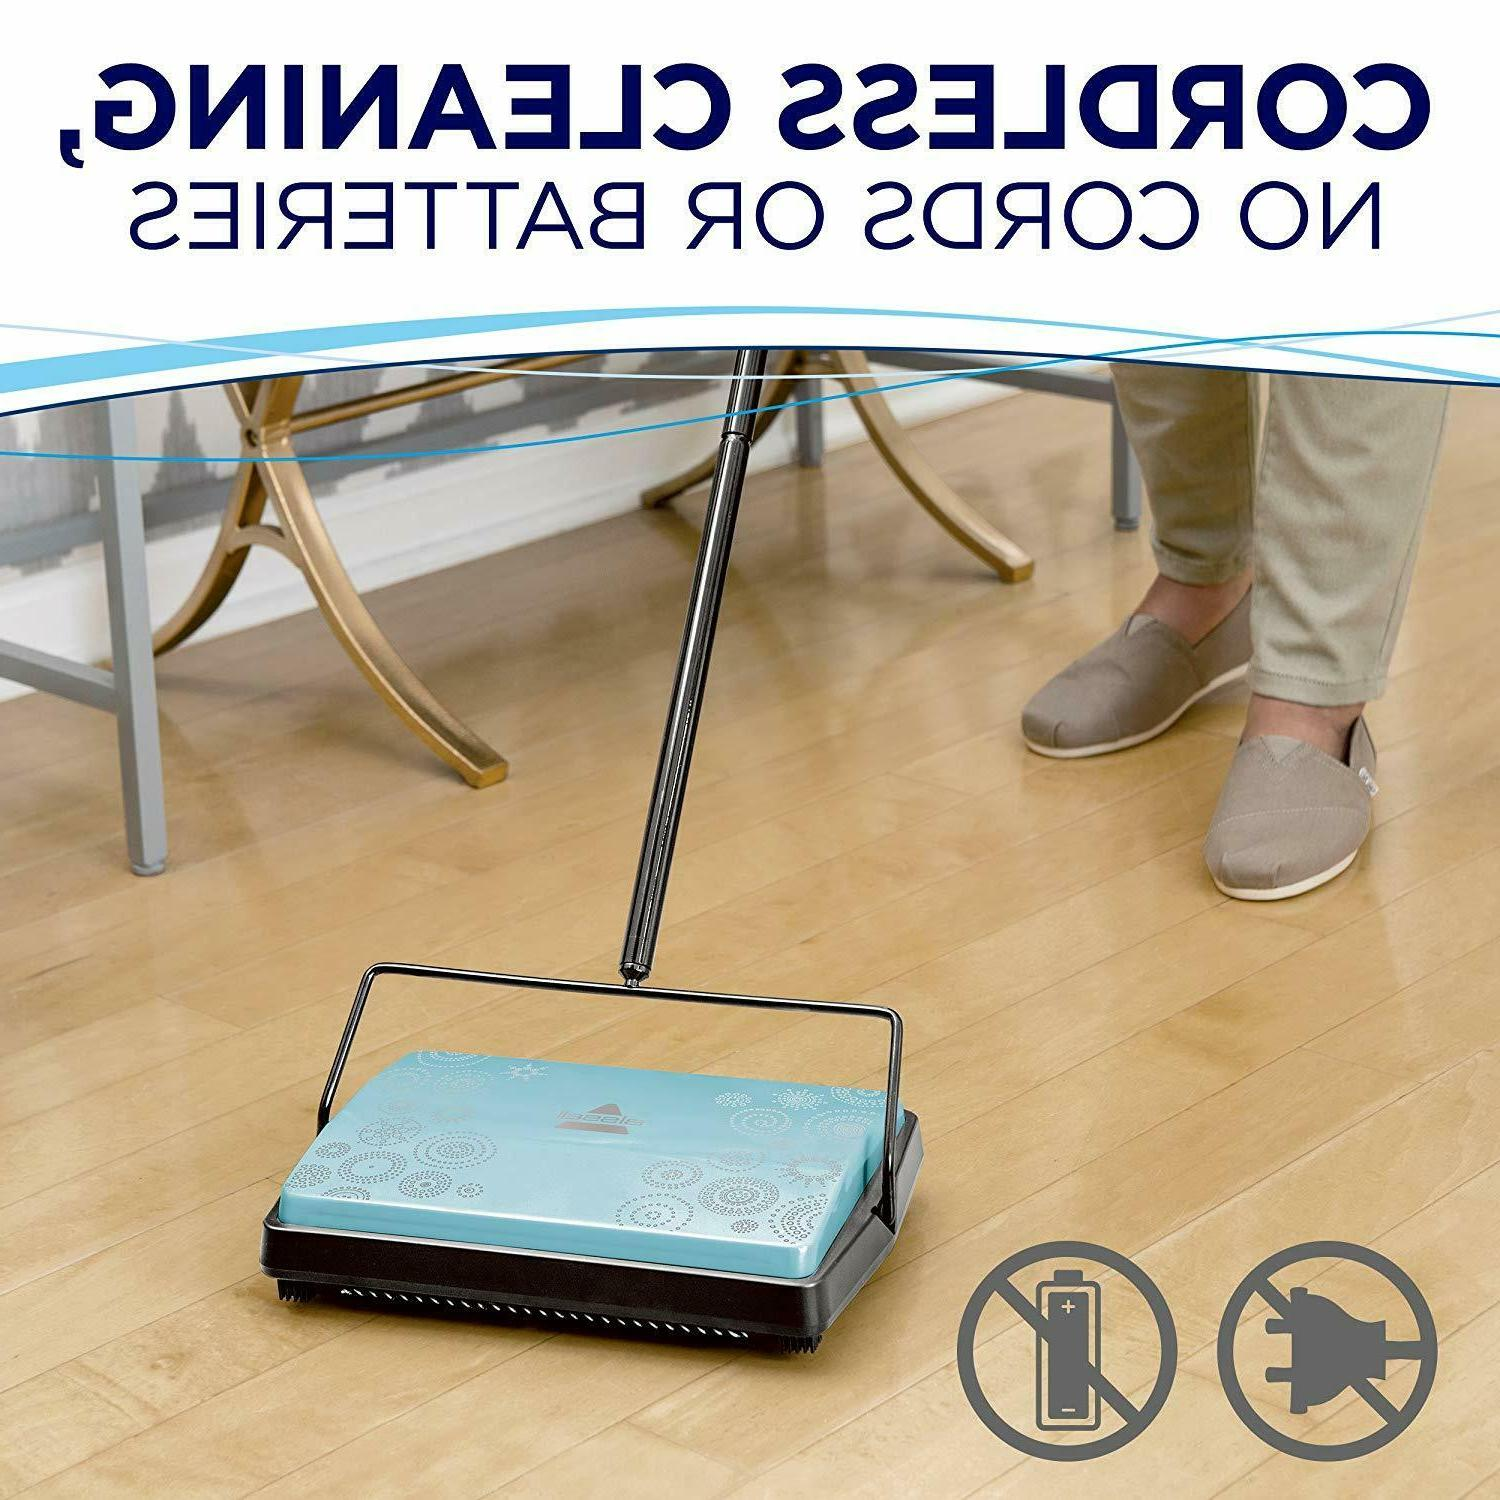 Bissell Broom Cordless Floor Cleaner Hotel